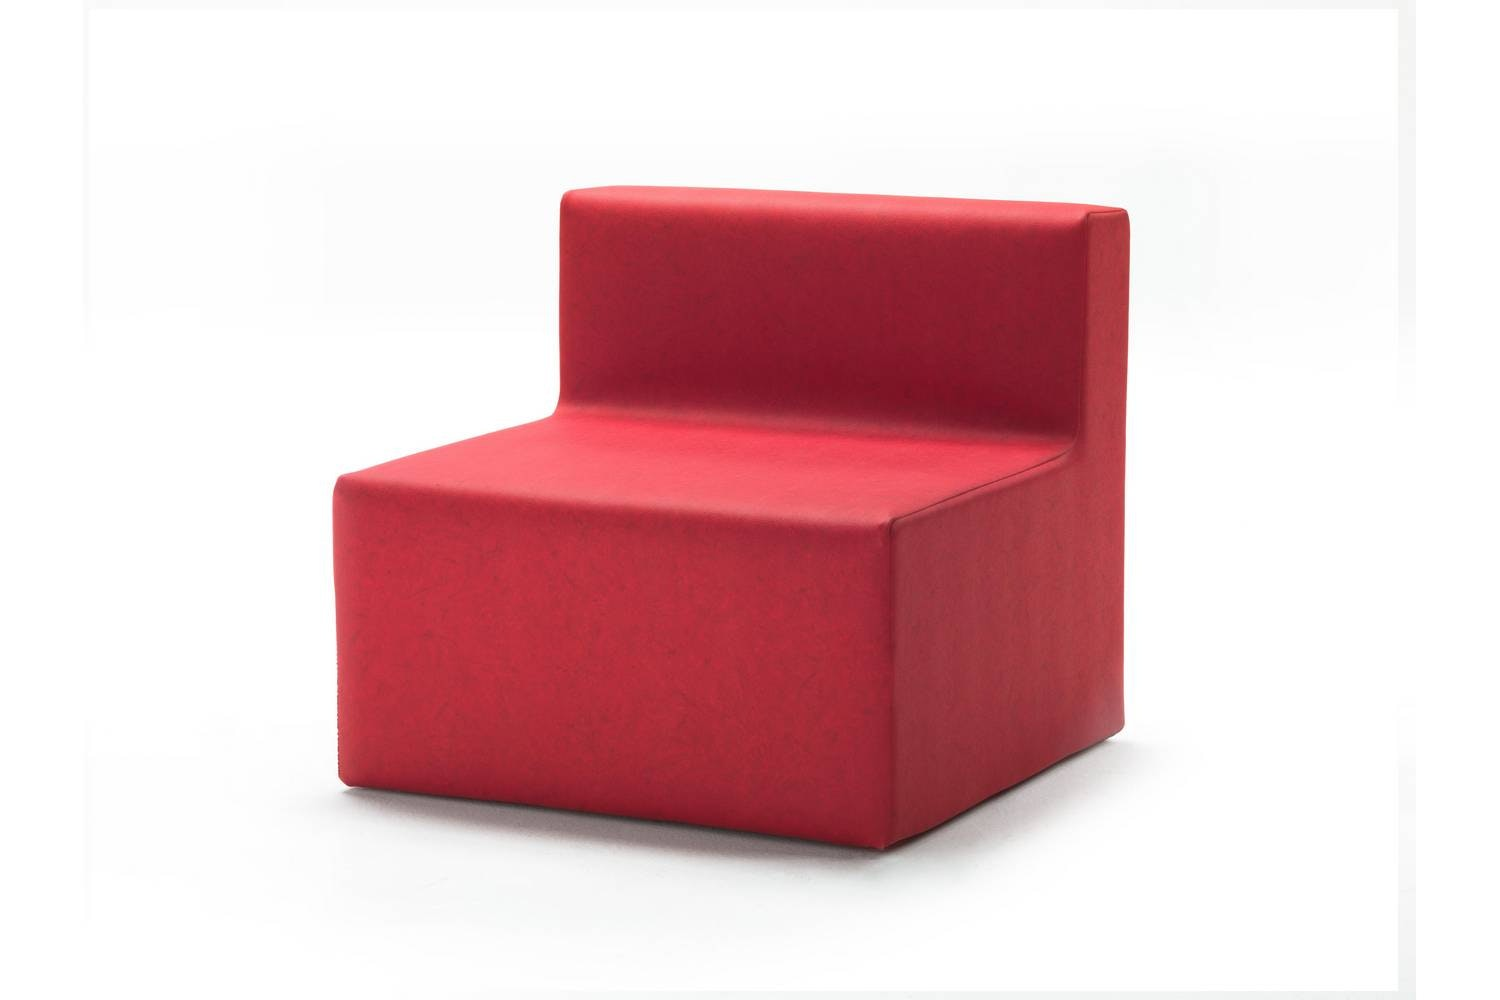 Cabrio Armchair by Piero Lissoni for Living Divani